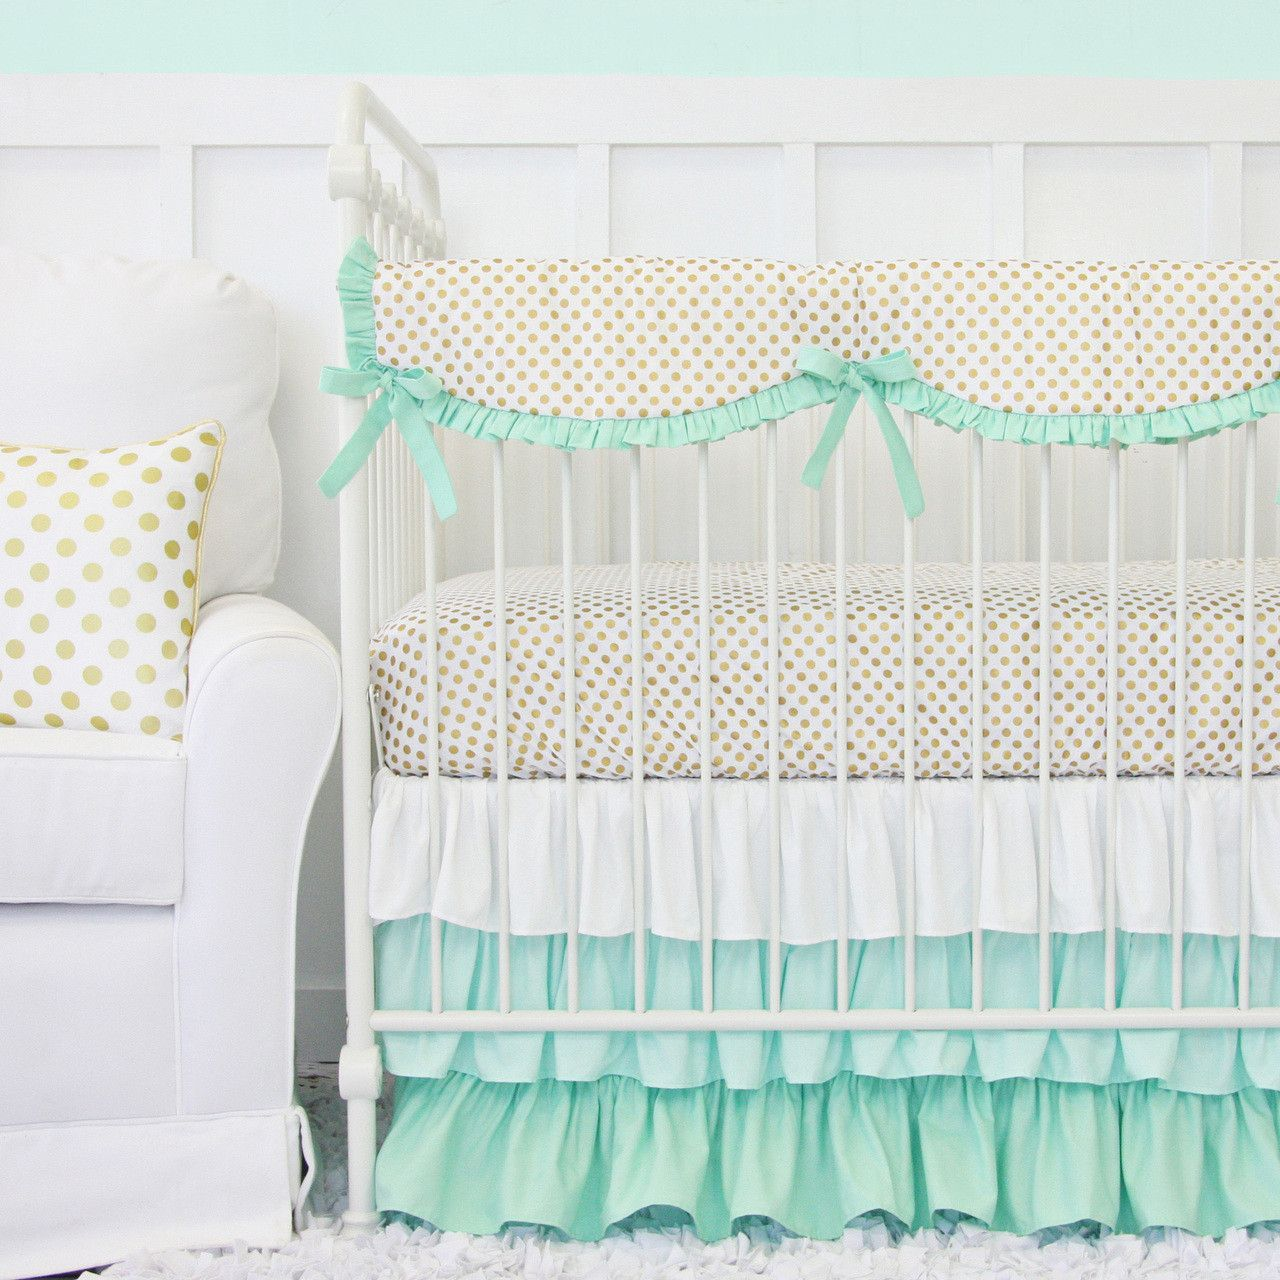 Alternatives to crib for babies - This Crib Rail Cover Is The Perfect Alternative To Crib Bumpers All The Style And